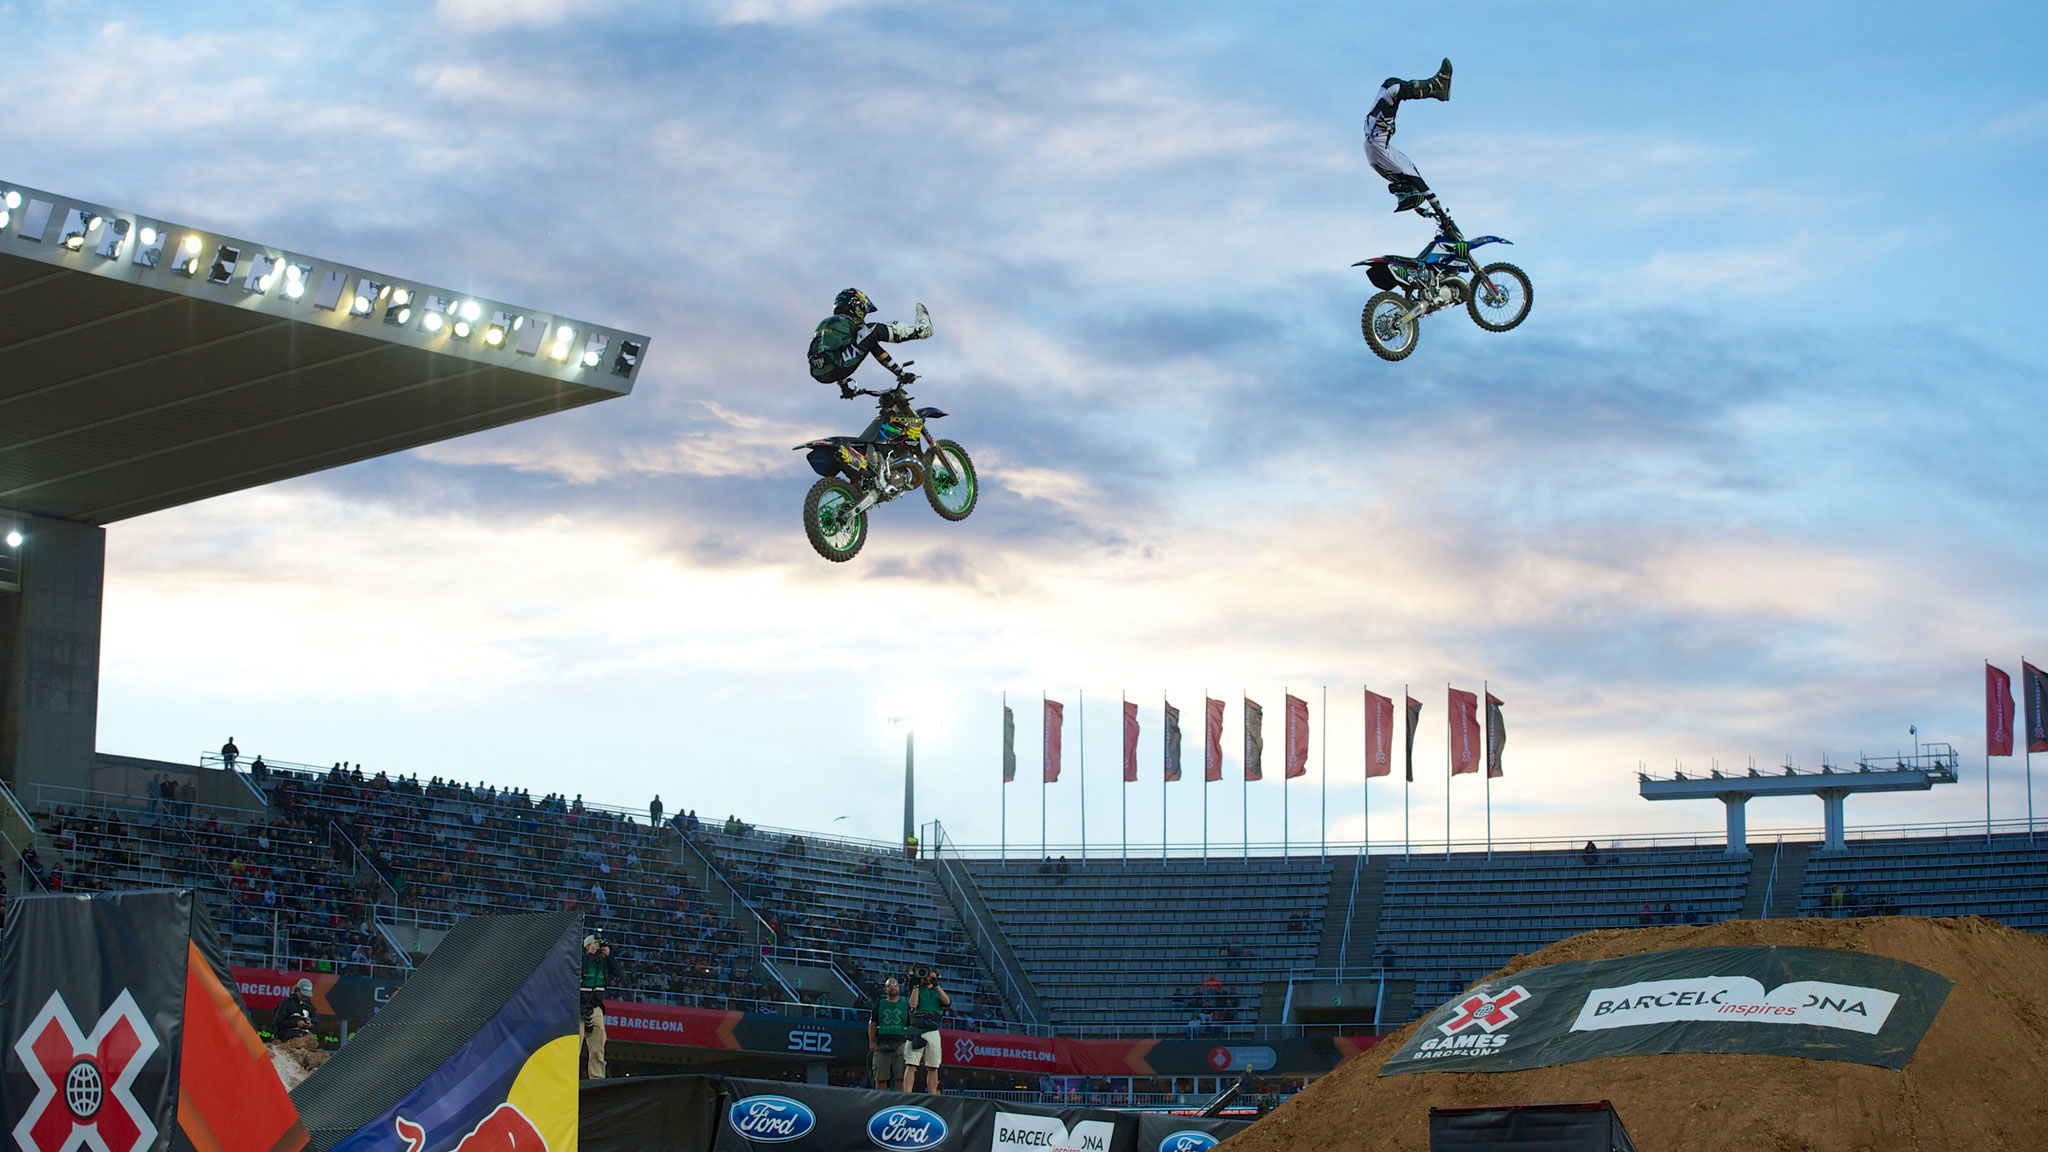 David Rinaldo and Adam Jones, right, during the Moto X Freestyle demo at X Games Barcelona.